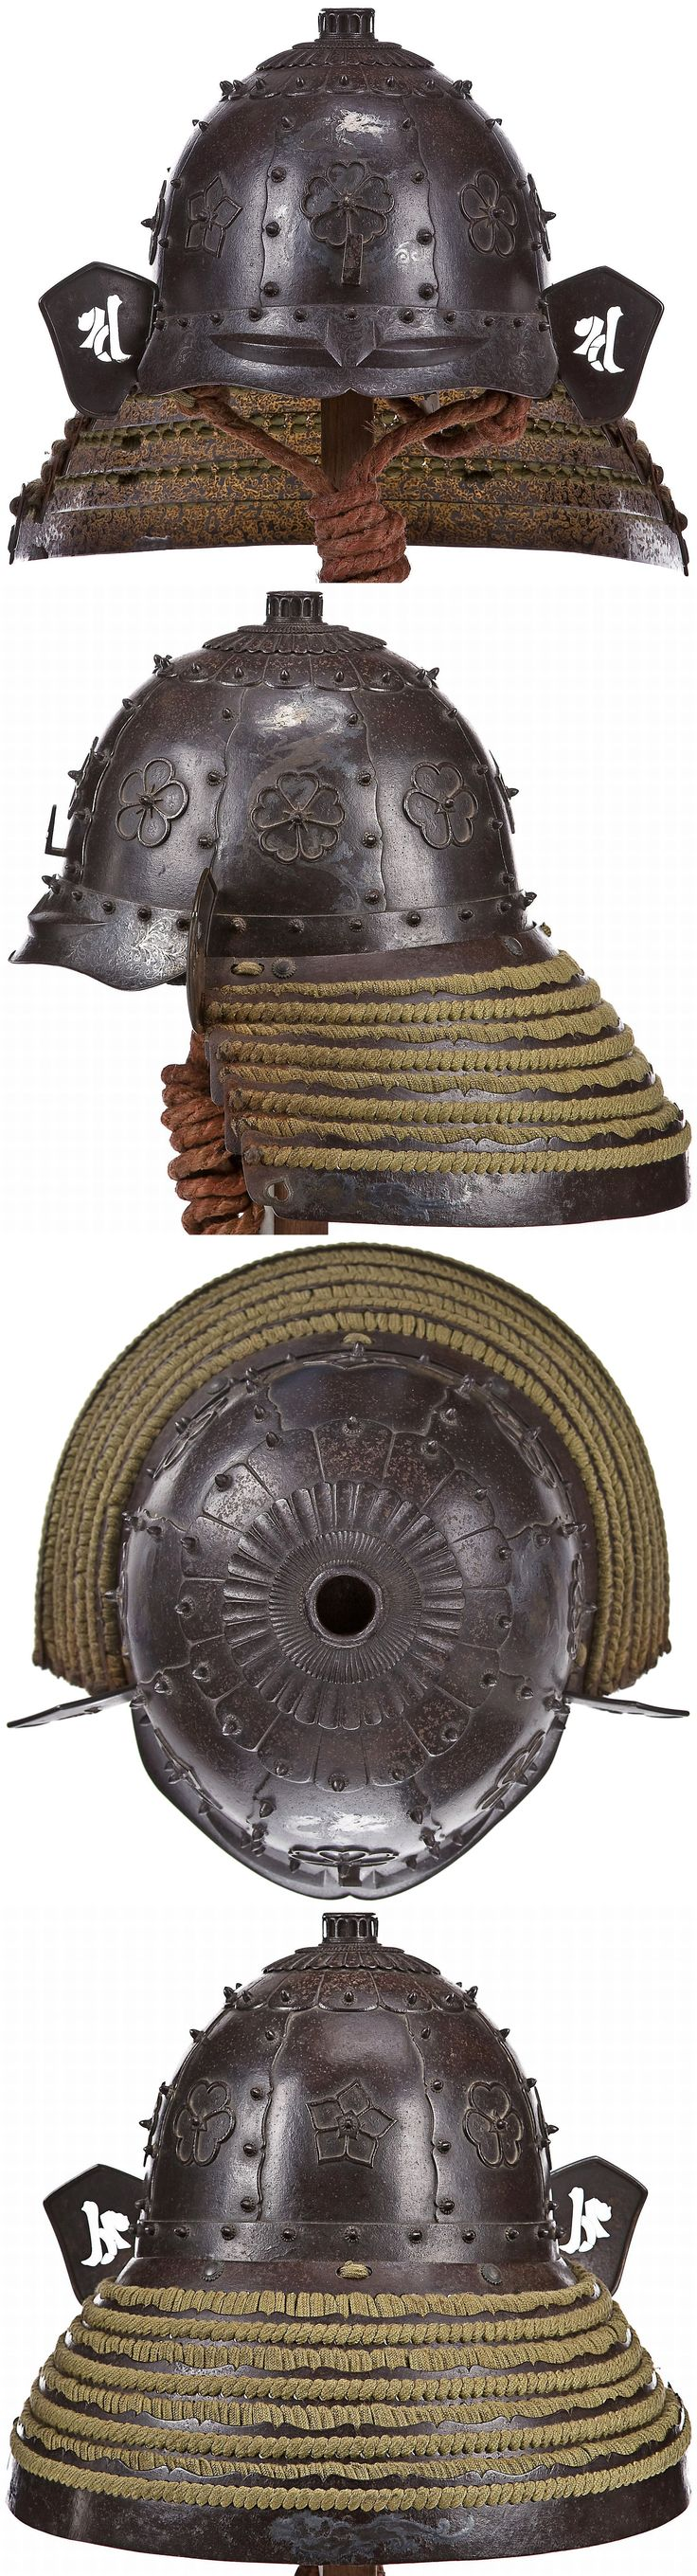 Saika kabuto, Muromachi-Momoyama period , armor produced by the smiths from the area of Saika in Kii province were distinctive in that they featured a set of prominent chrysanthemum rings set around the tehen, strong standing rivets and embossed eyebrows. http://www.jujitsumelbourne.com.au/-jiu-jitsu-brunswick-melbourne-vic.html